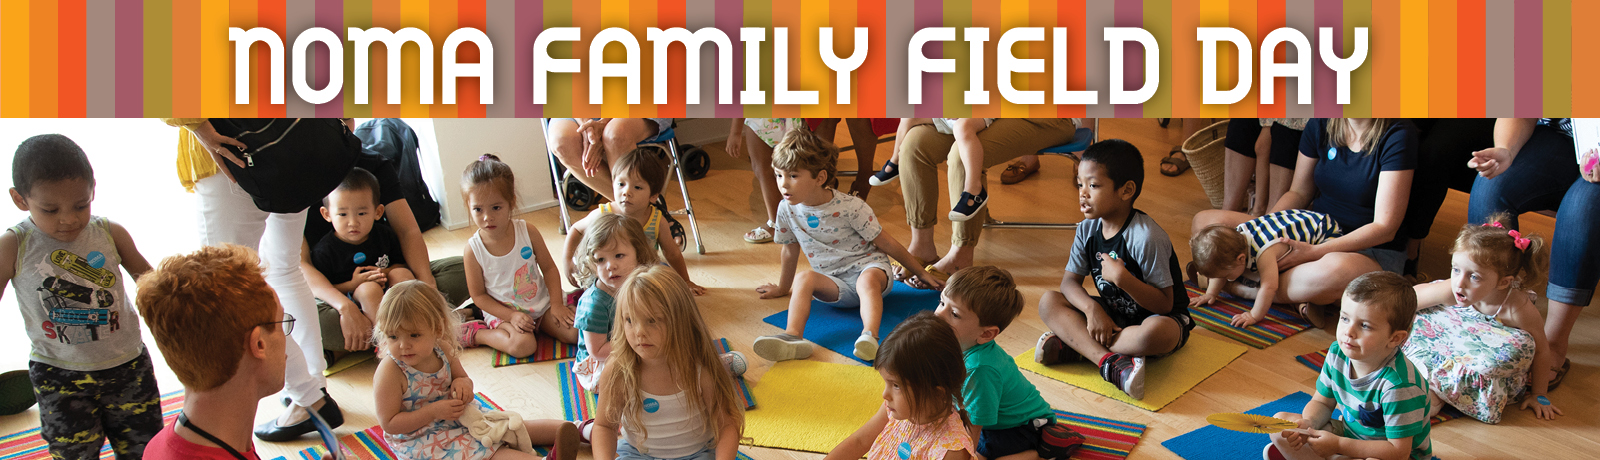 Saturday, November 23rd, 10 am to 2 pm:  Visitors of all ages are invited to join the fun for a FREE festival.